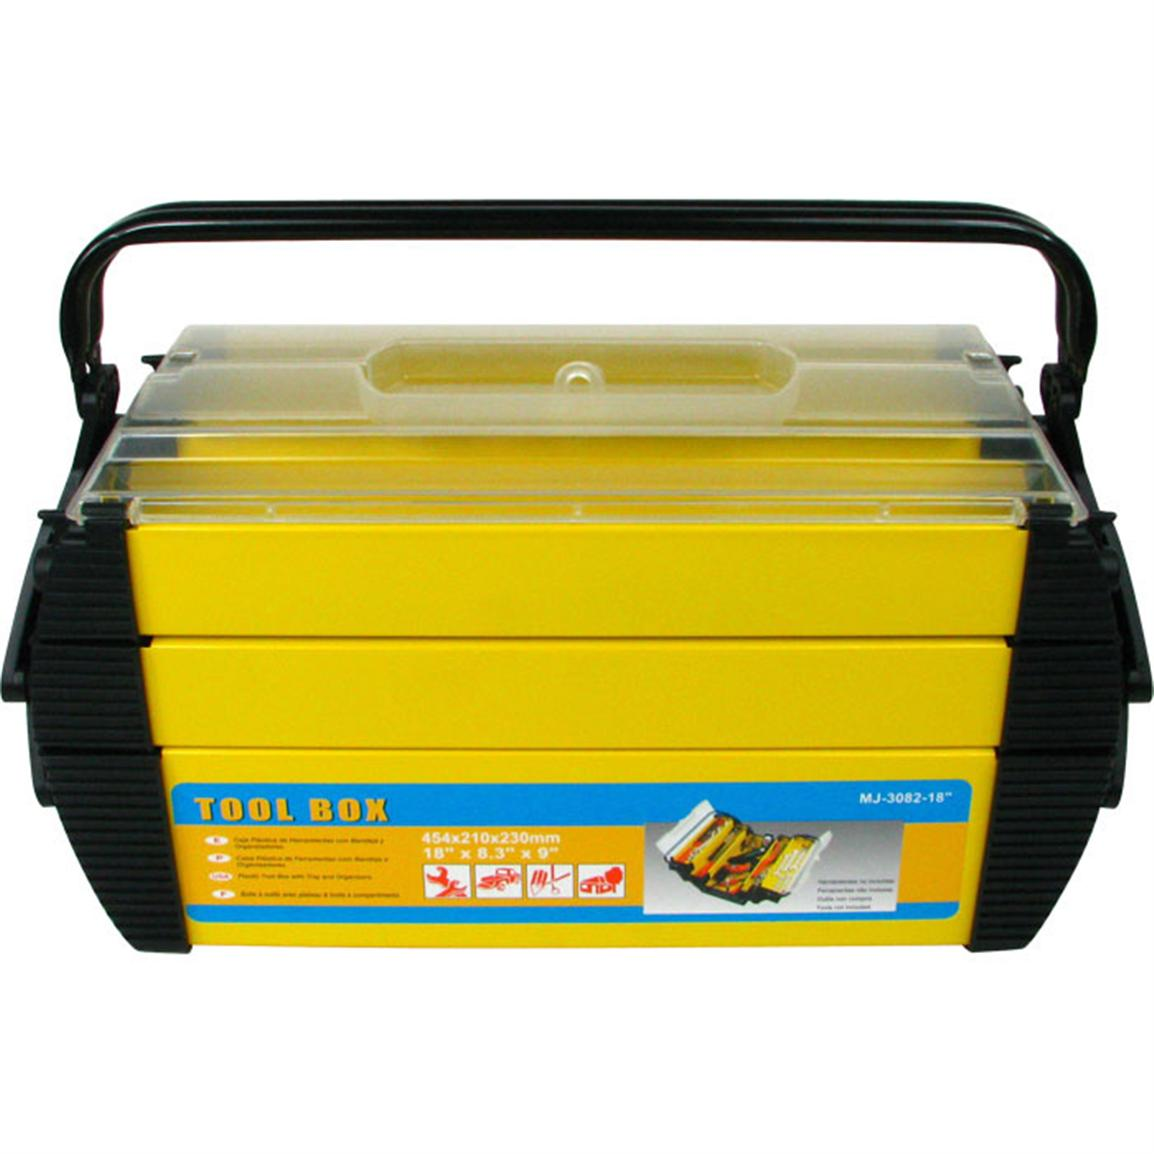 Trademark® Deluxe Steel and Plastic Tool Box